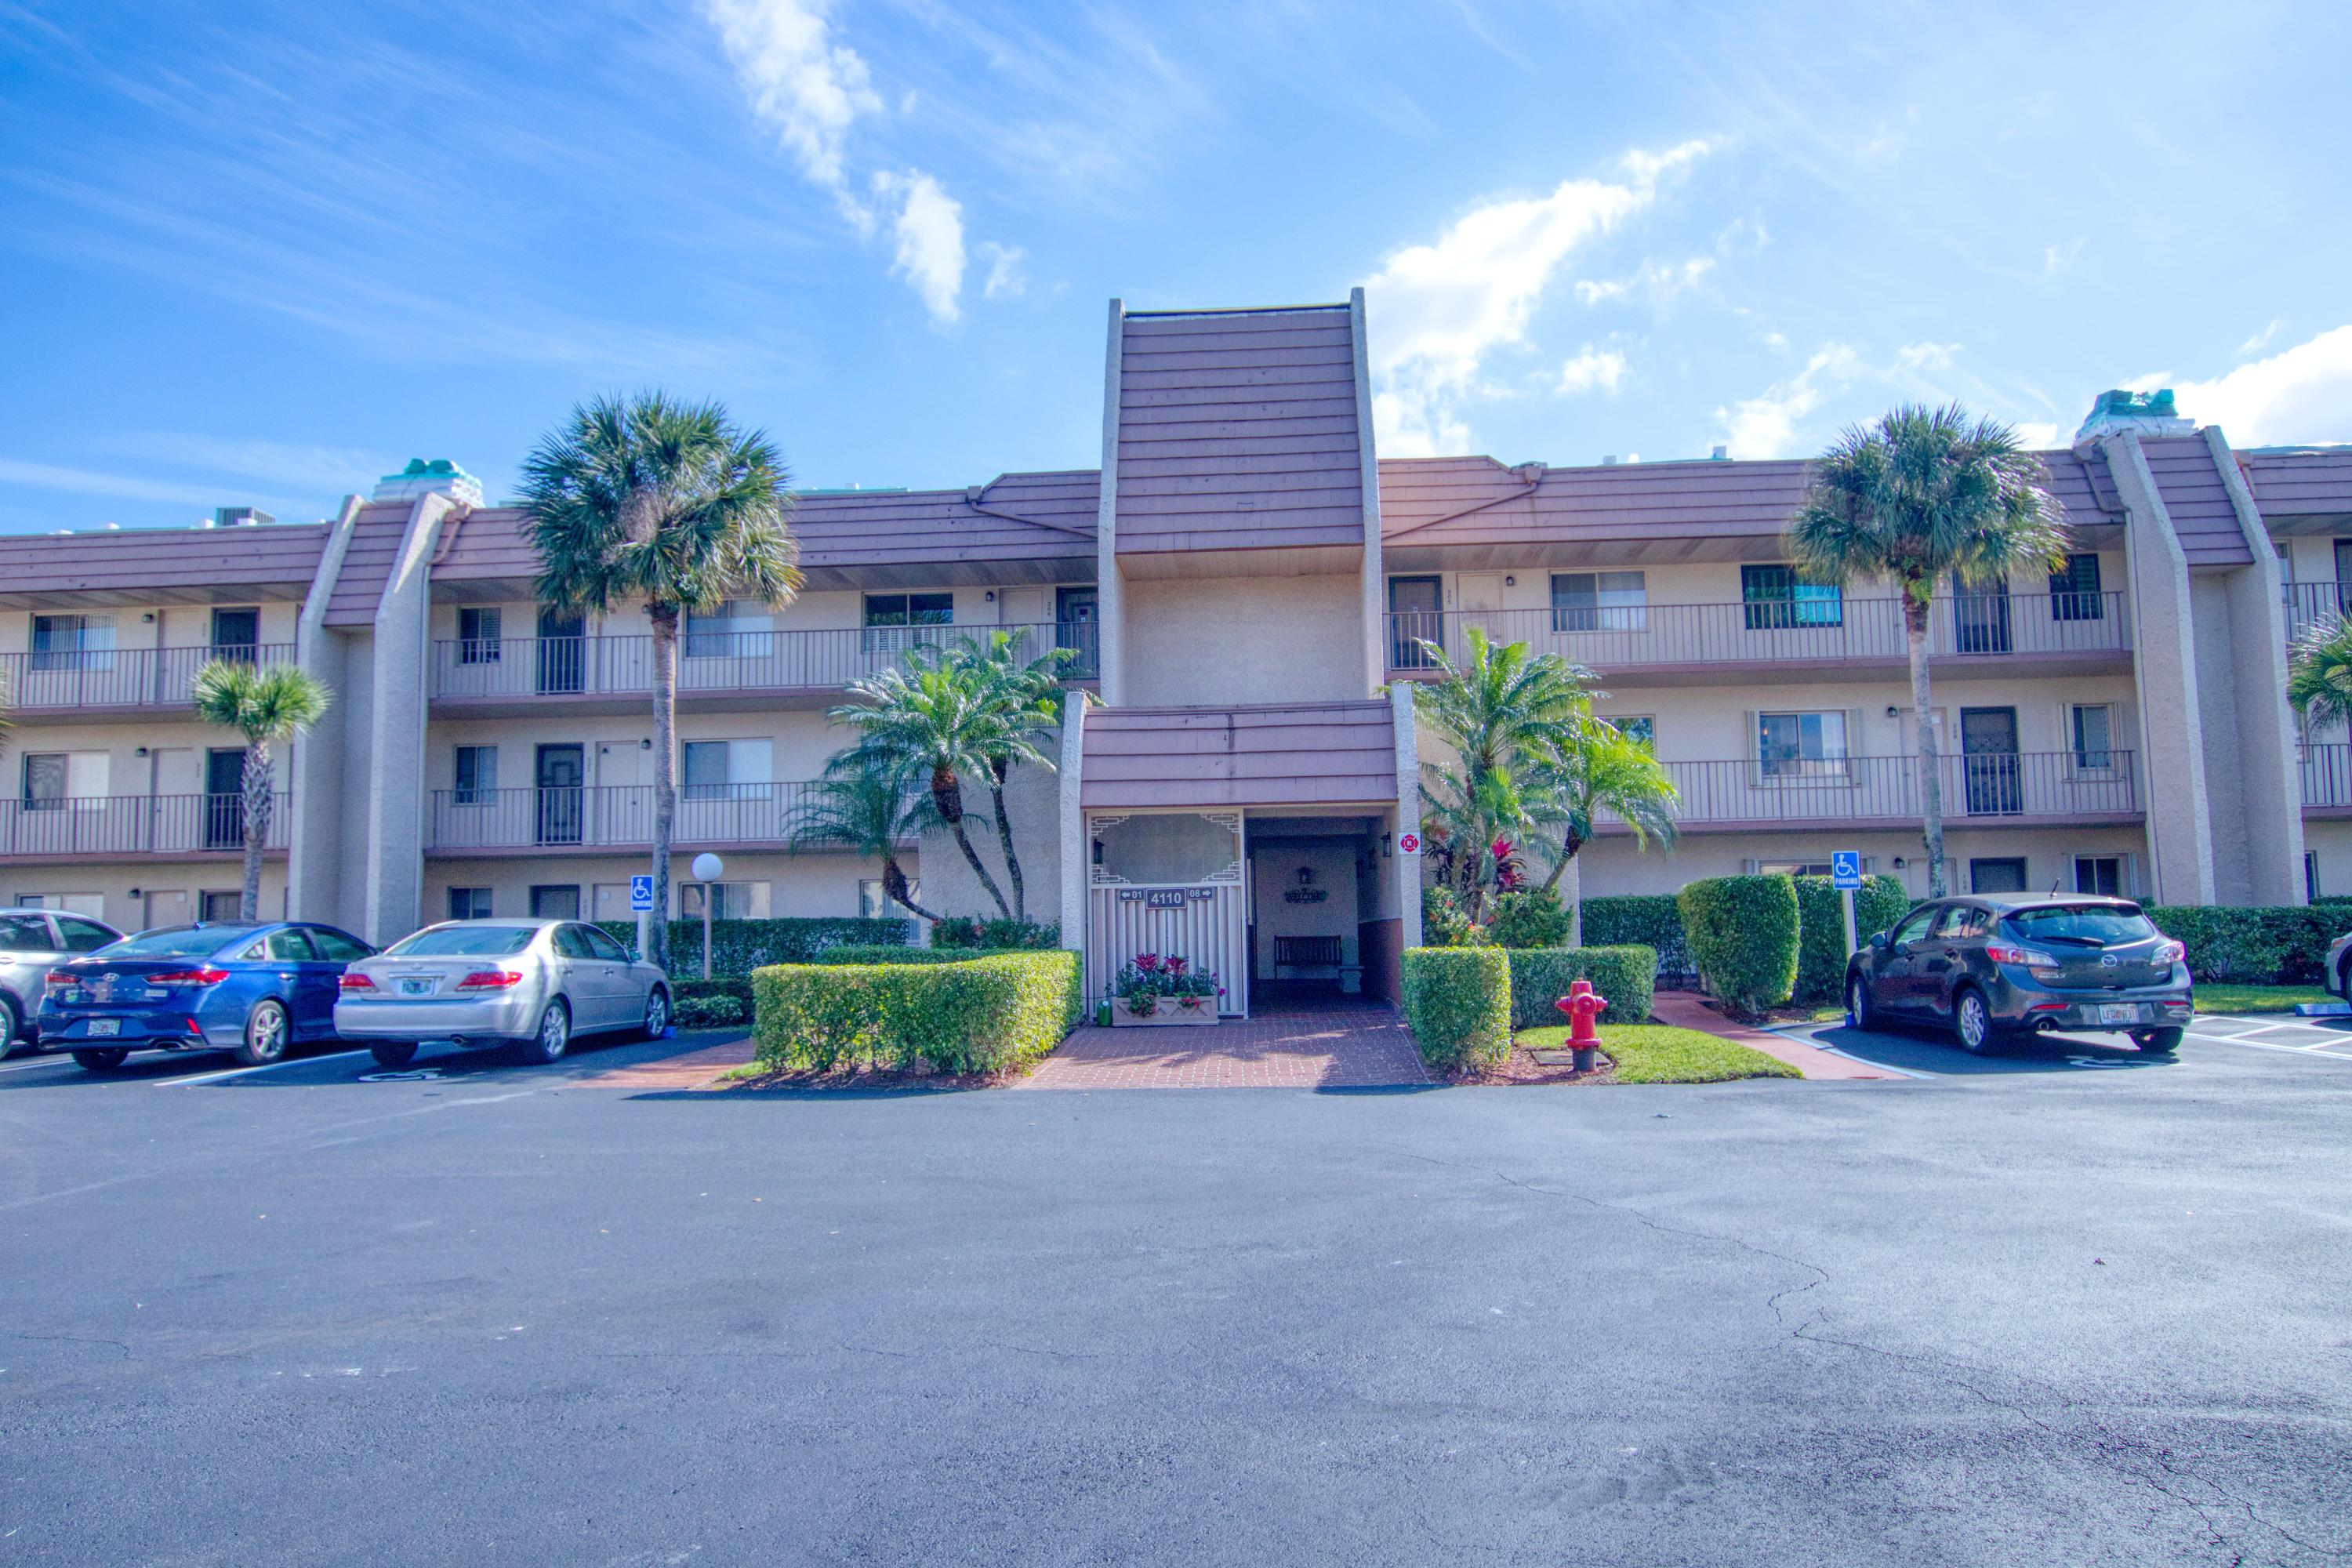 Fabulous 2/2 renovated condo. Enjoy granite in kitchen, new cabinets, updated baths, walk in closet, washer/dryer , extra storage, & screened balcony. Experience the peace & ambiance of manned guard gates & 24 hour security patrols all located on lush tropical grounds. Beautiful community swimming pool just out your front door. Furnishings are upgraded & coming w/ the unit. You are minutes from the FLA. turnpike , I95, great restaurants, activities, shopping, hospitals, airports, and the beach.